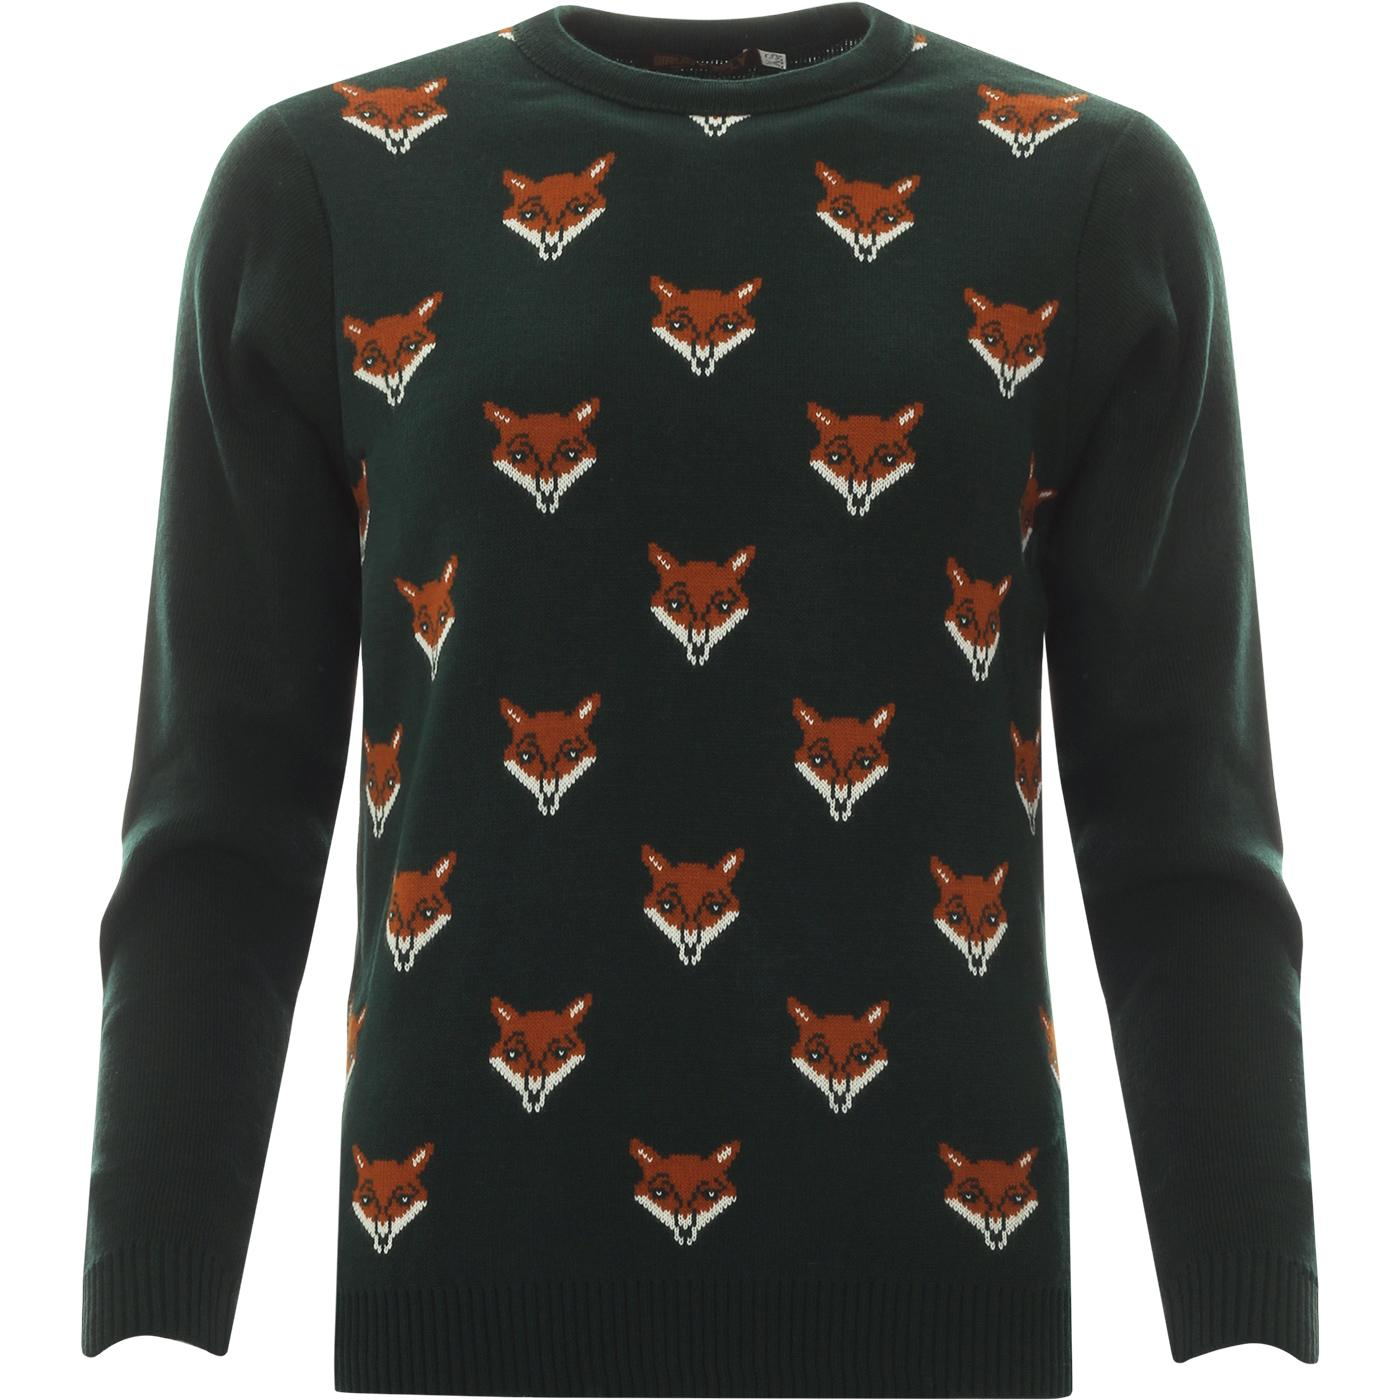 Fox Face Retro 70s Intarsia Knit Jumper (Green)